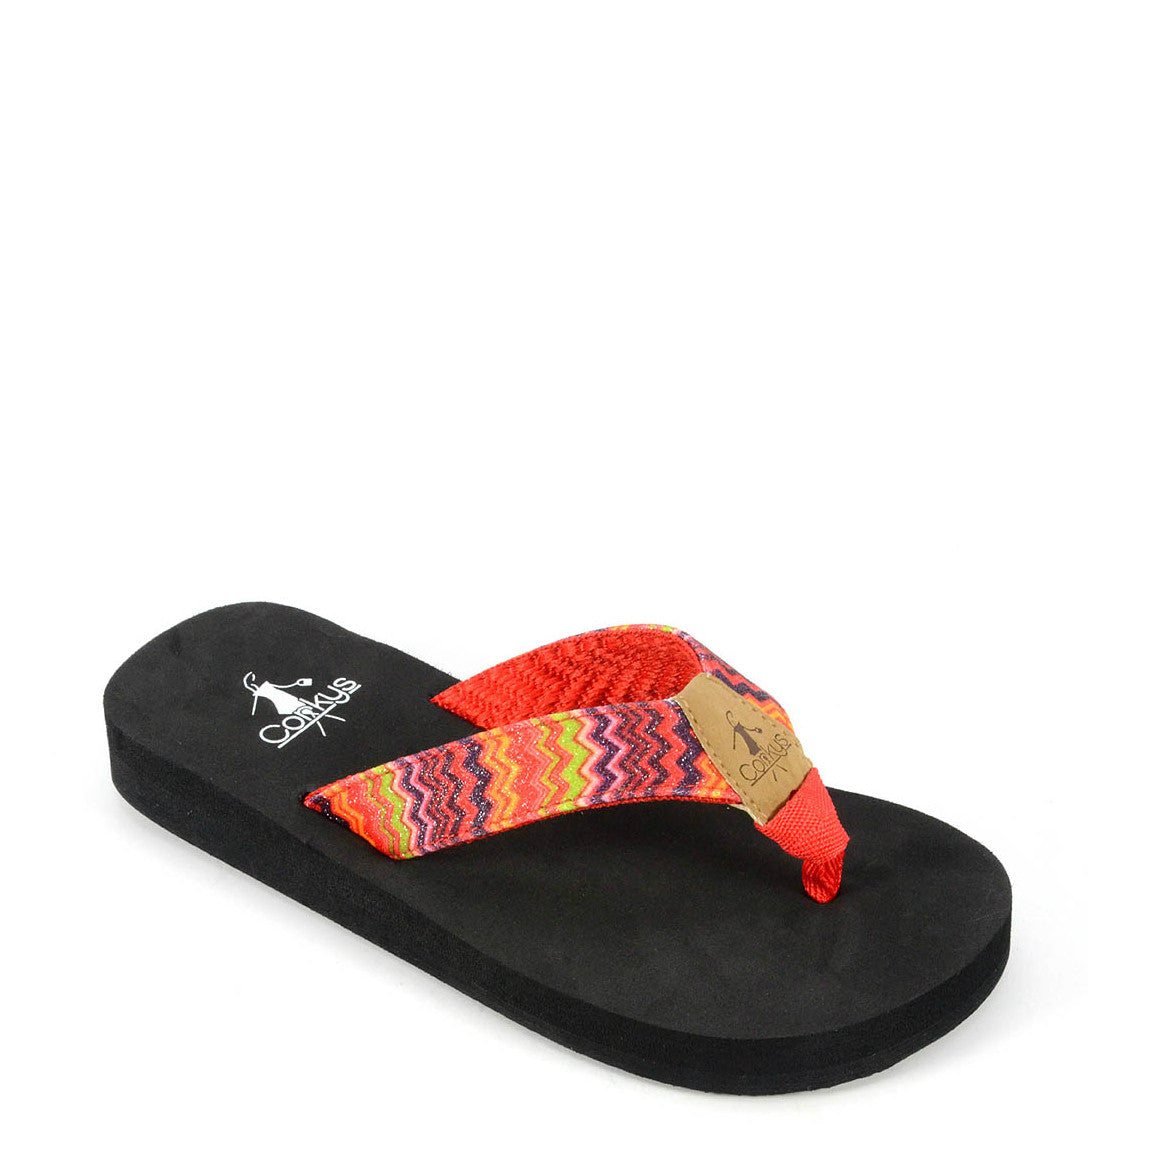 21763e31bb9c Corkys Kid s Fish Flip Flop - Red Multi 20-8078 - ShoeShackOnline